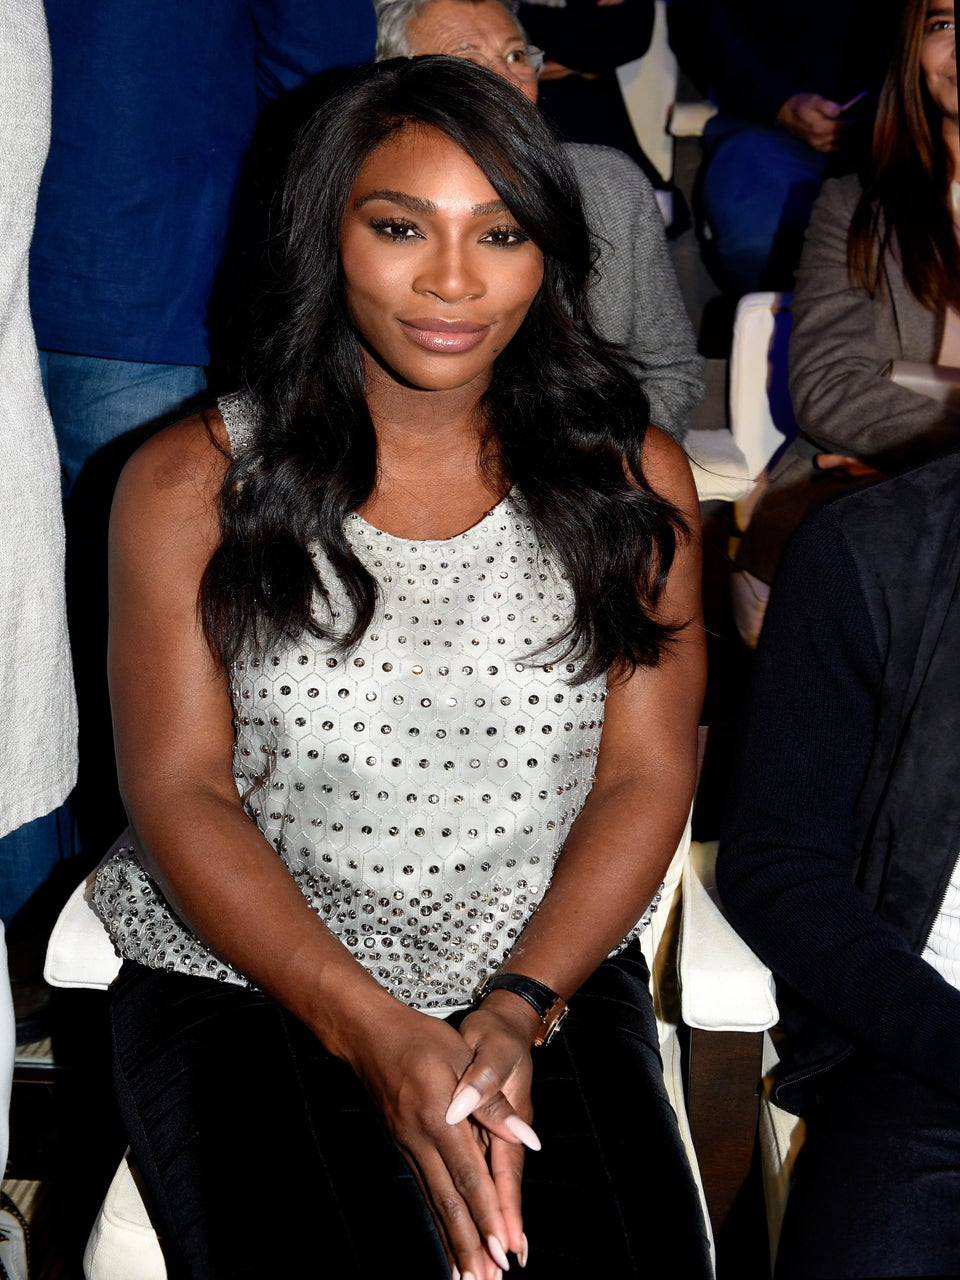 Serena Williams Fears for the Safety of Her Nephew, 18, Amid Increasing Police Violence: 'I Won't Be Silent'